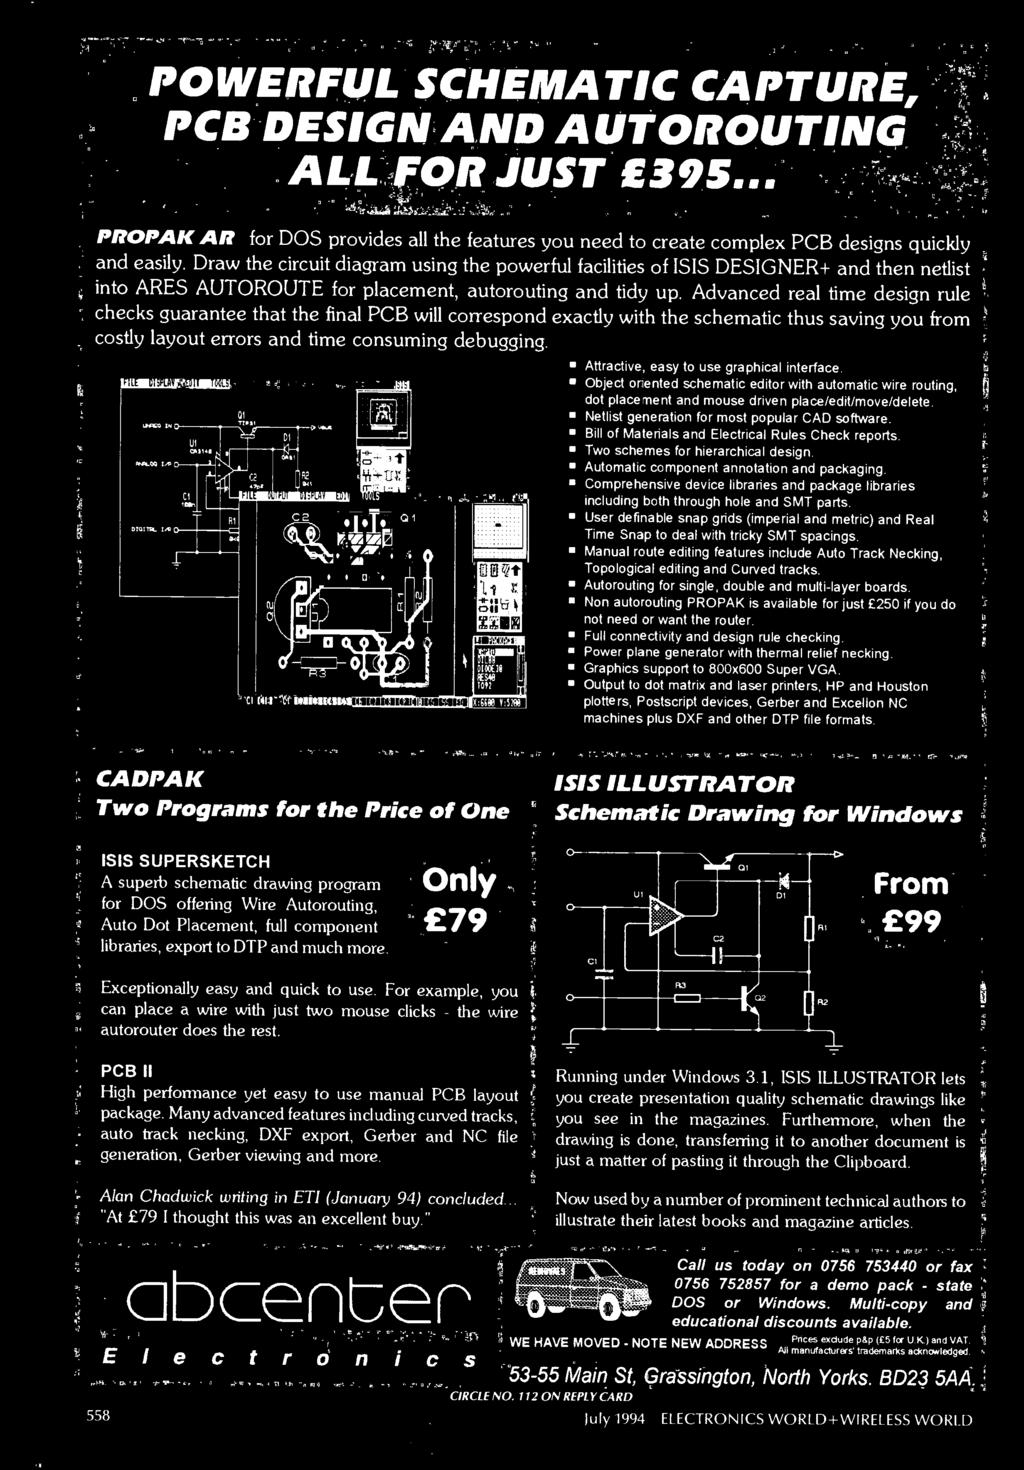 World Wireless Pdf 1991 Mitsubishi Laser Talon Fuse Box Diagram Object Oriented Schematic Editor With Automatic Wire Routing Dot Placement And Mouse Driven Place